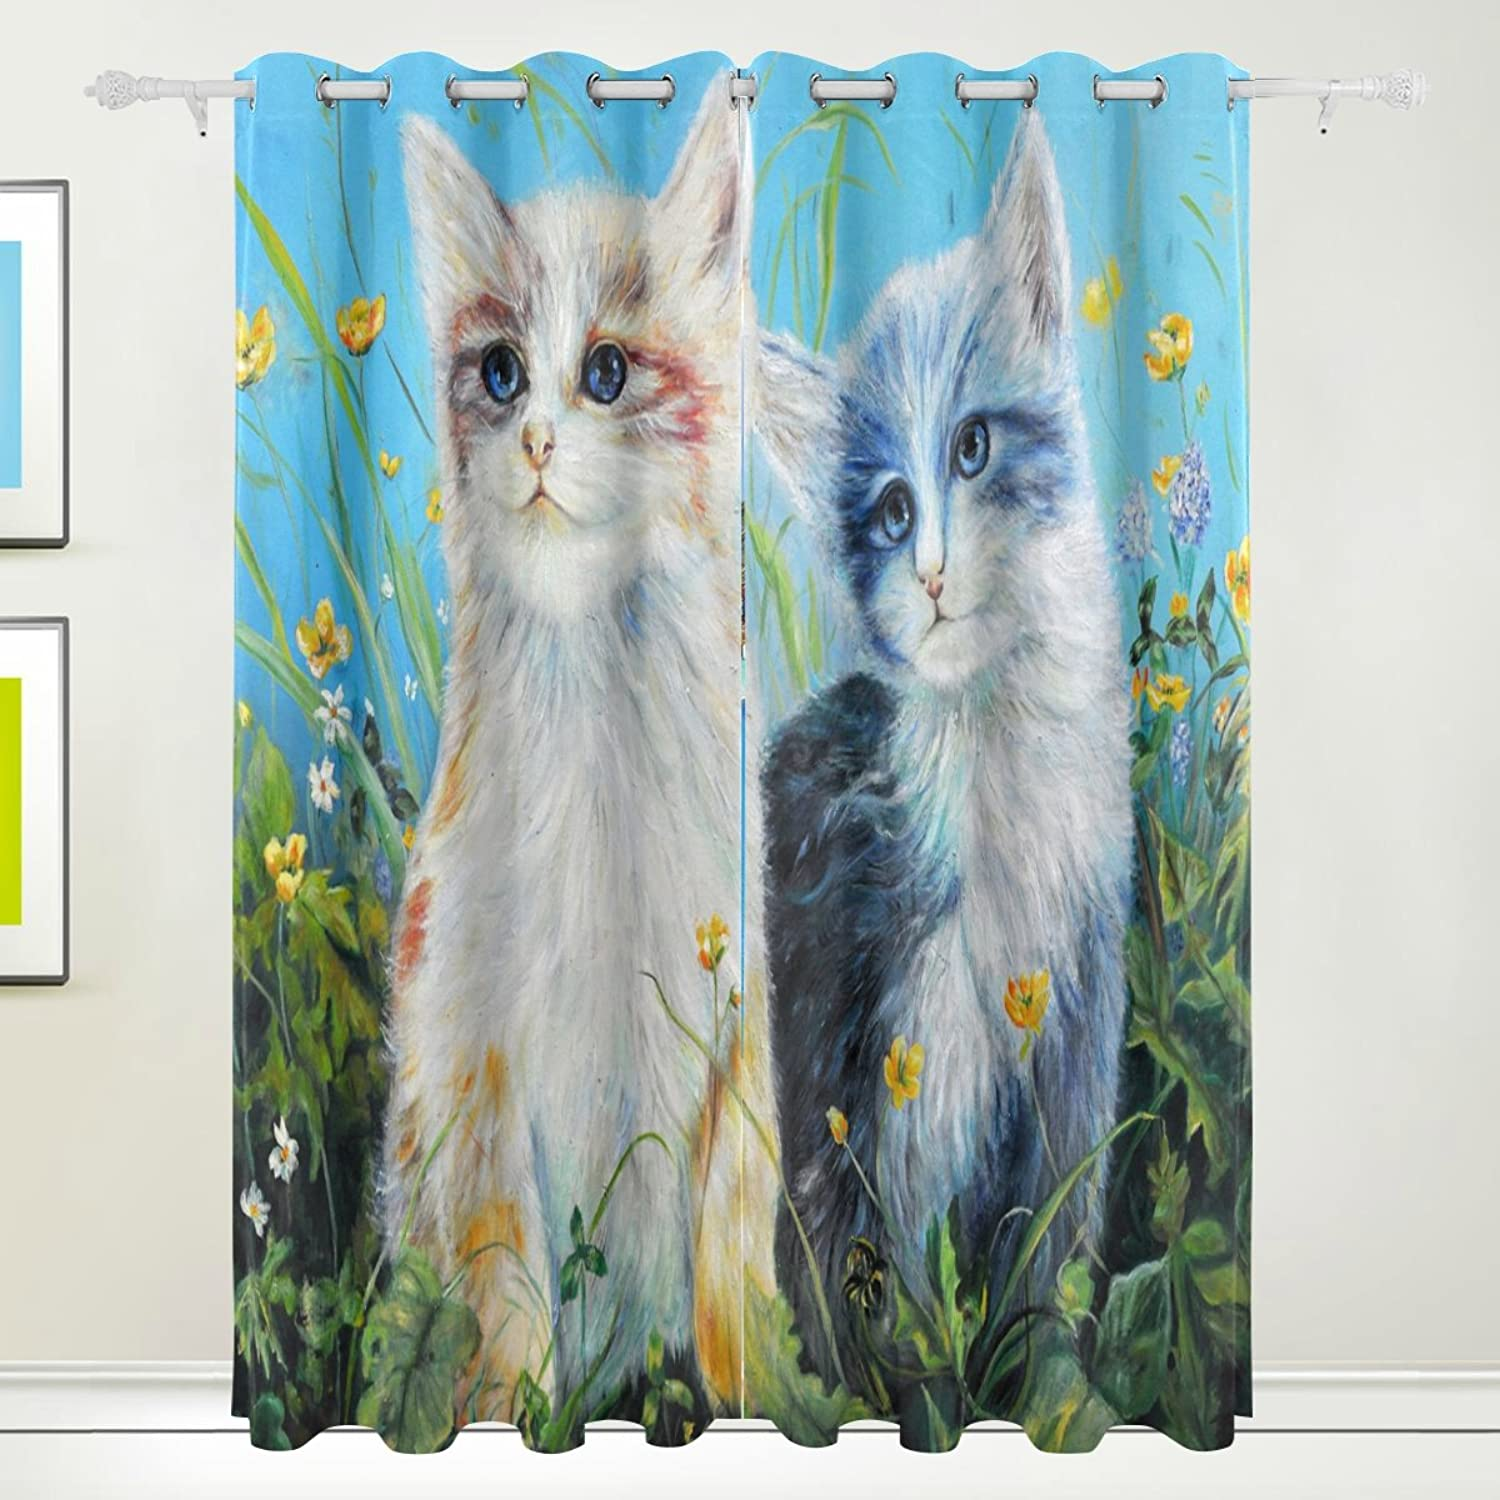 Oil Painting Cats Blackout Window Curtains Grommet Top Thermal Insulated Room Darkening Drape for Bedroom Living Room 55W x 84L Inch, 2 Panels